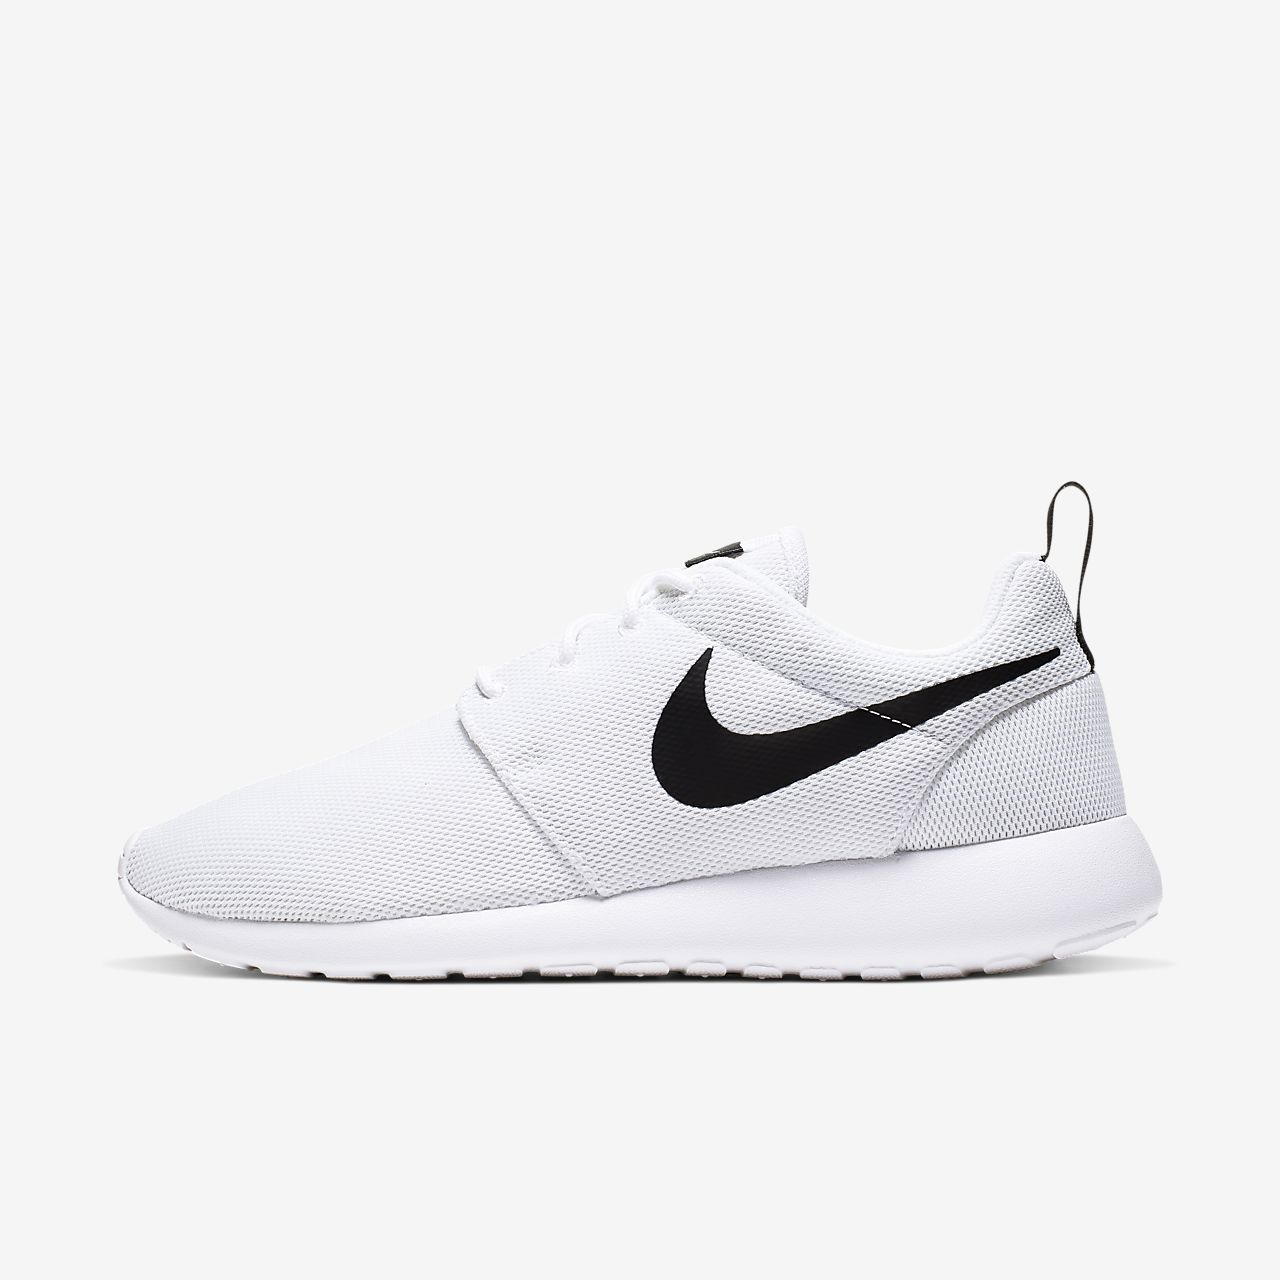 nike roshe run review size of carry